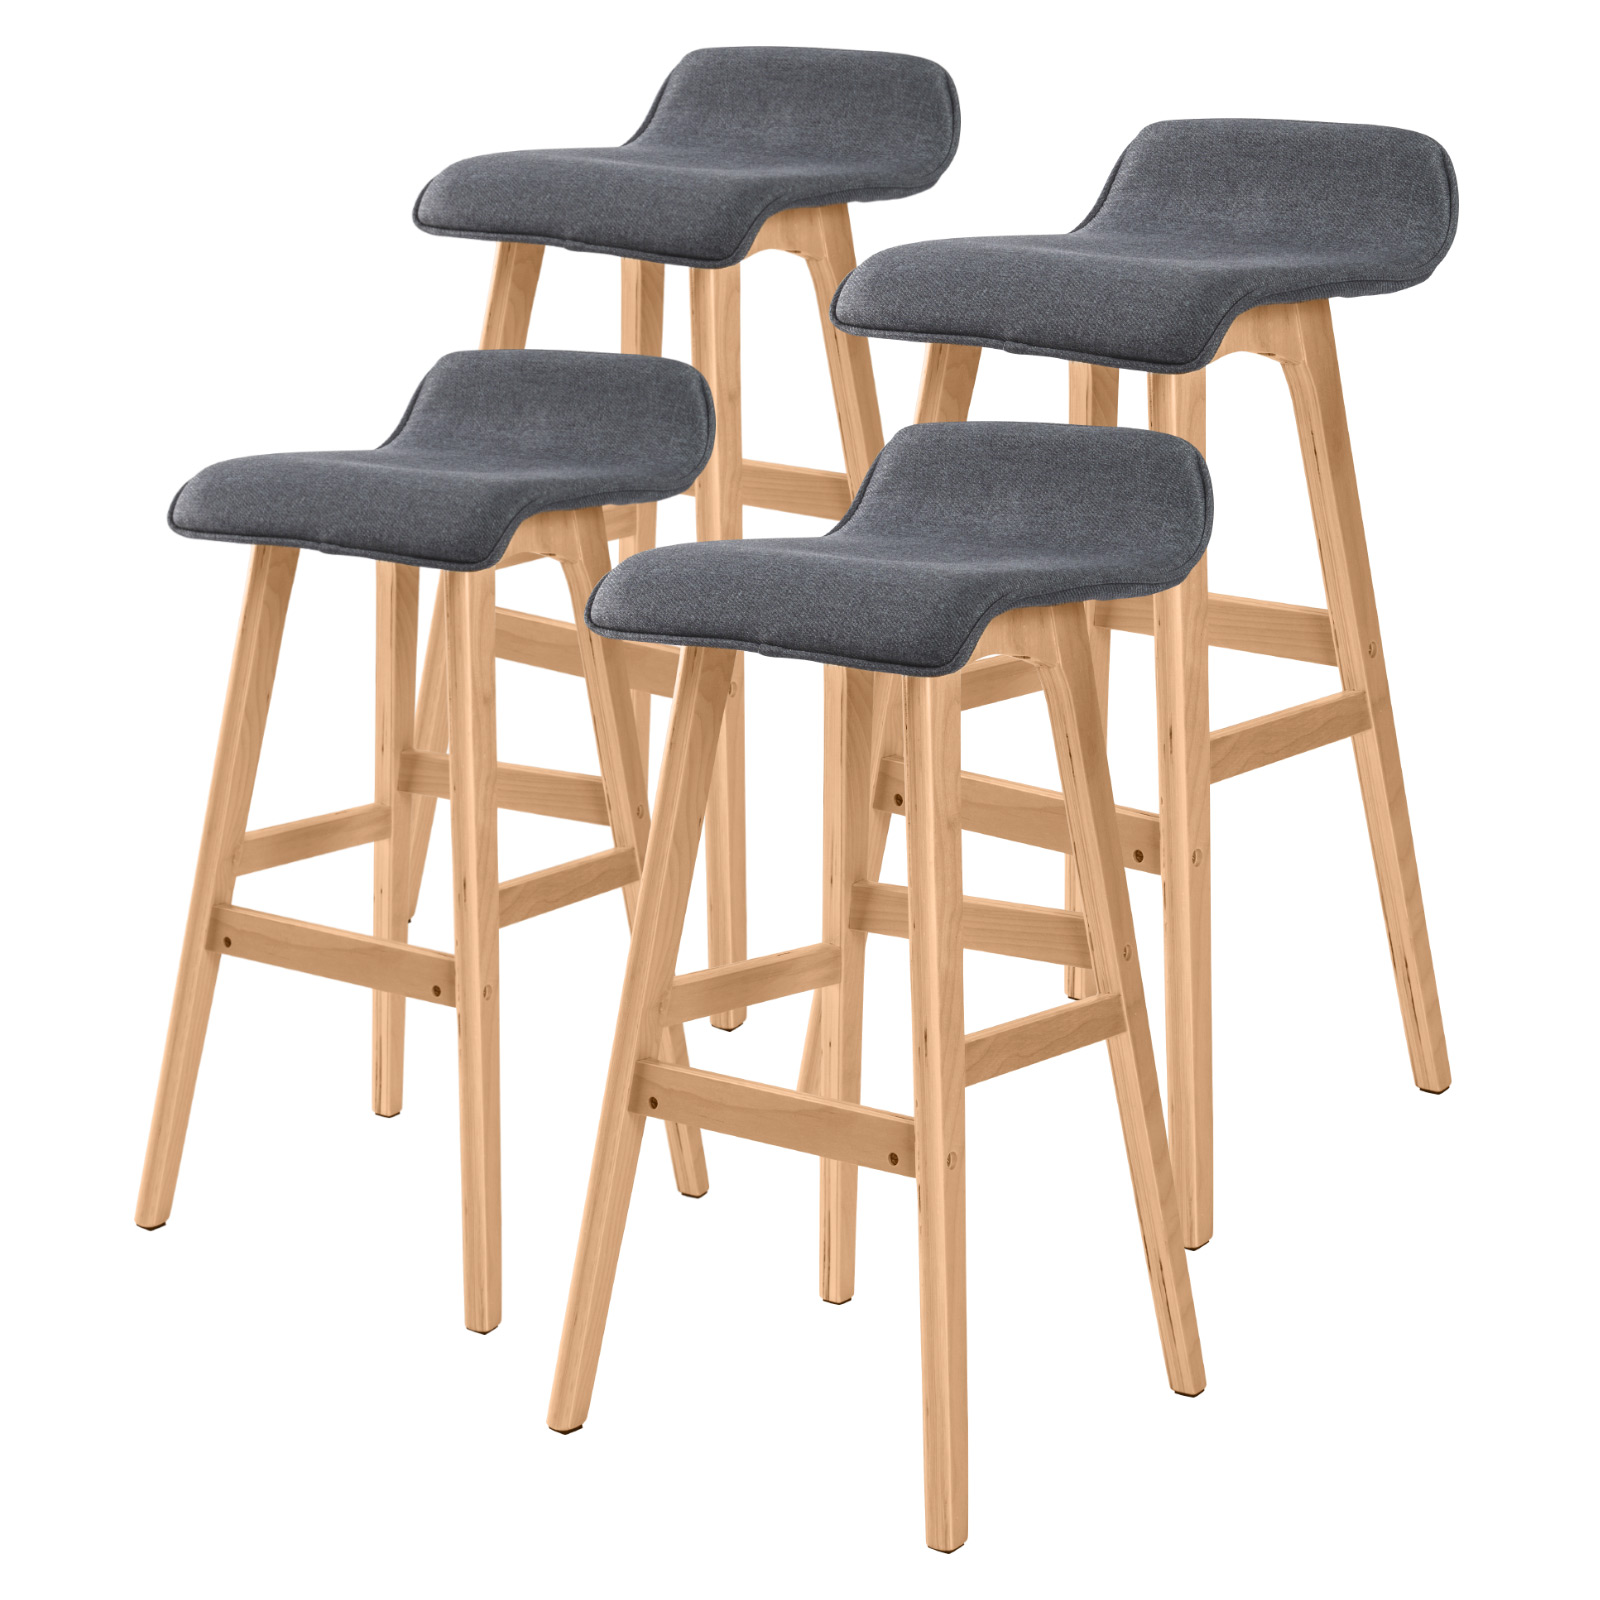 4x Oak Wood Bar Stool 74cm Fabric SOPHIA - GREY